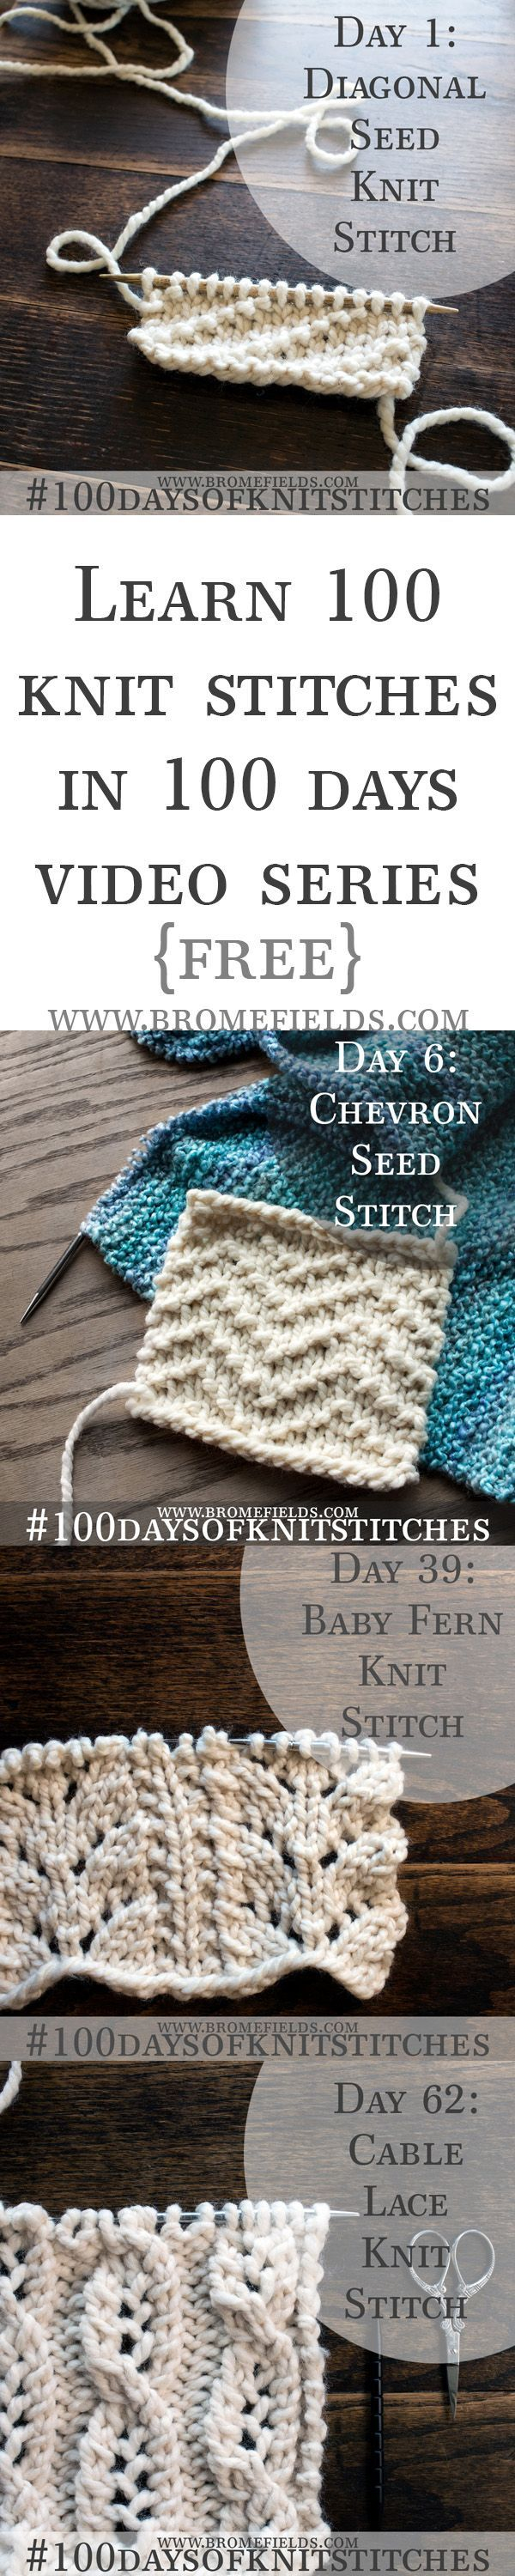 Receive an email everyday for the next 100 days with a new stitch, a free PDF pattern and a video to show you exactly how to knit the stitch, row by row. {For beginner through advanced knitters!}